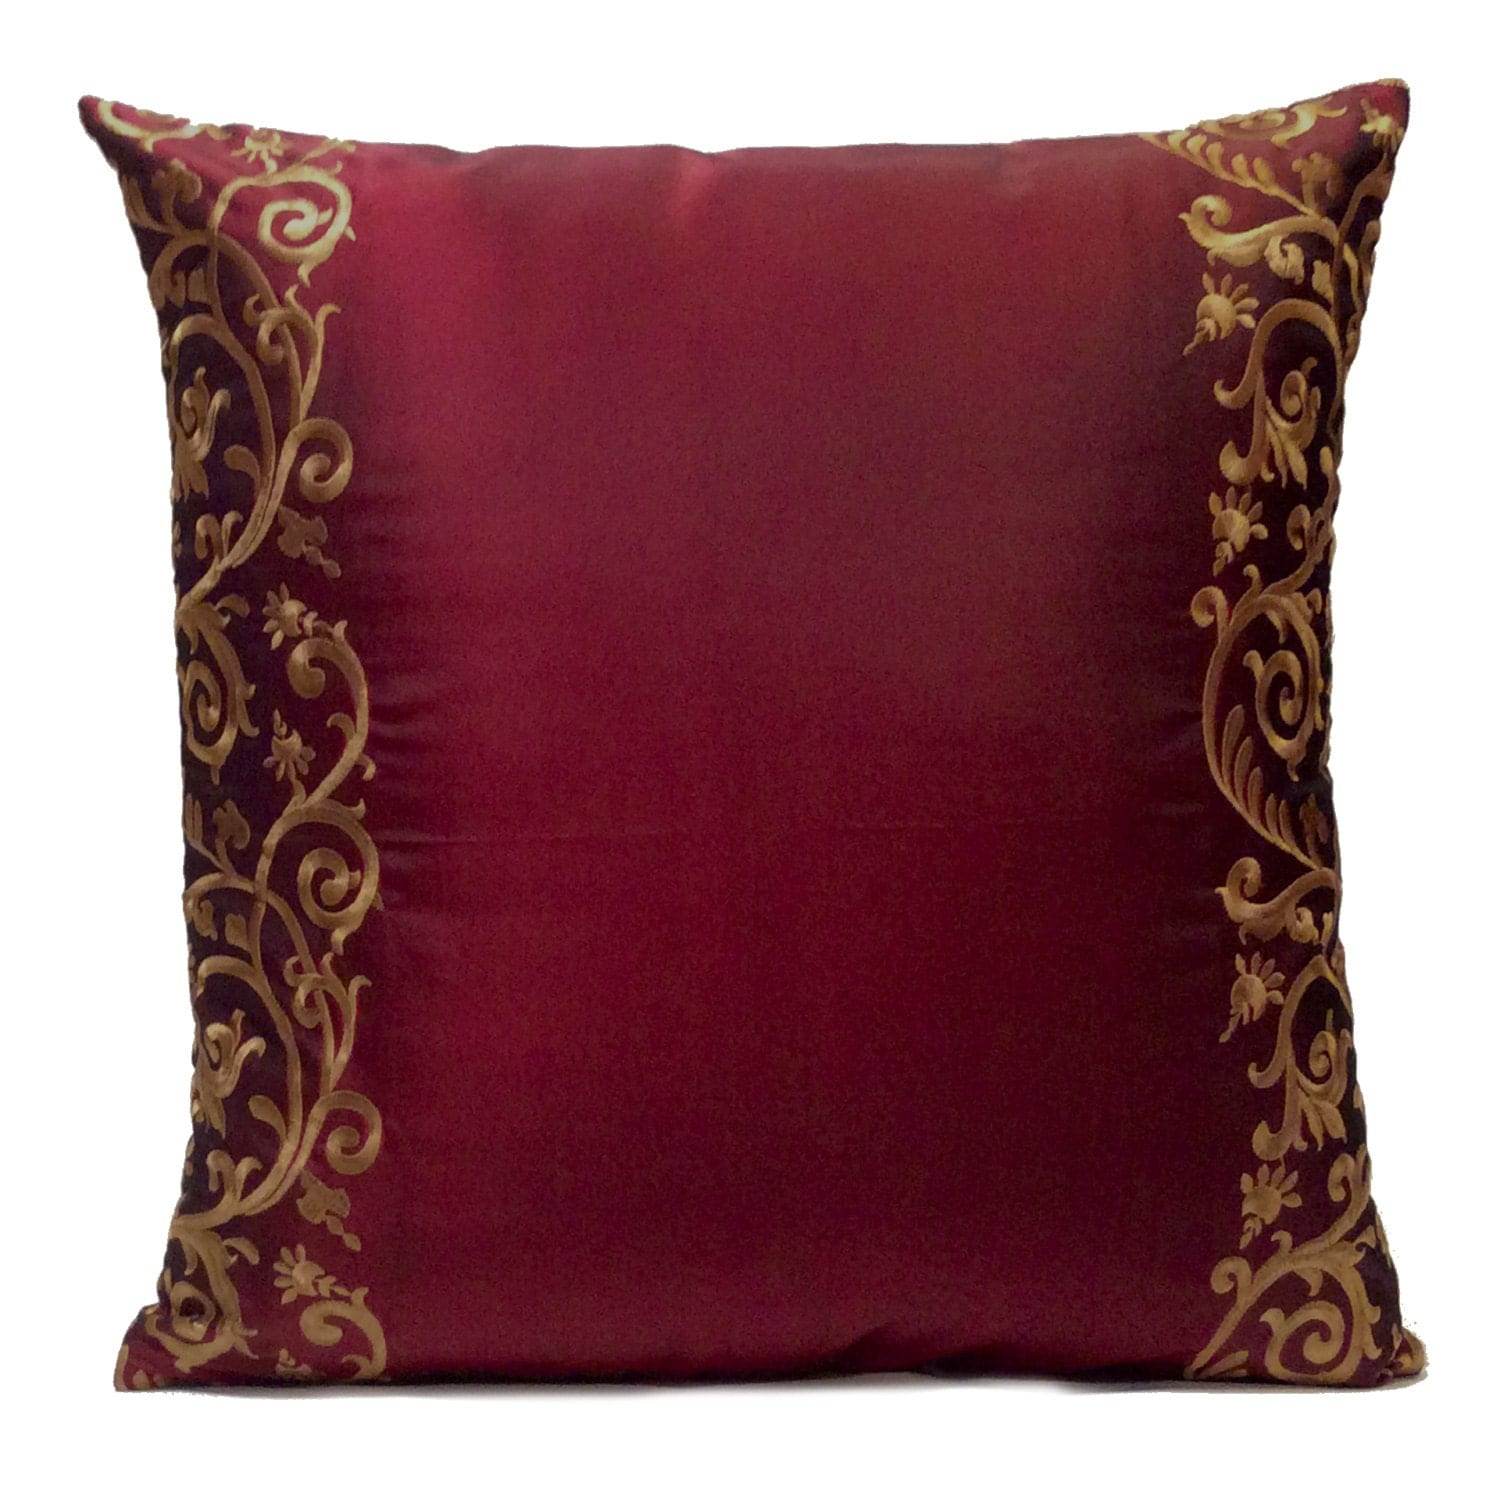 Throw Pillows For Burgundy Couch : Green Throw Pillows For Couch